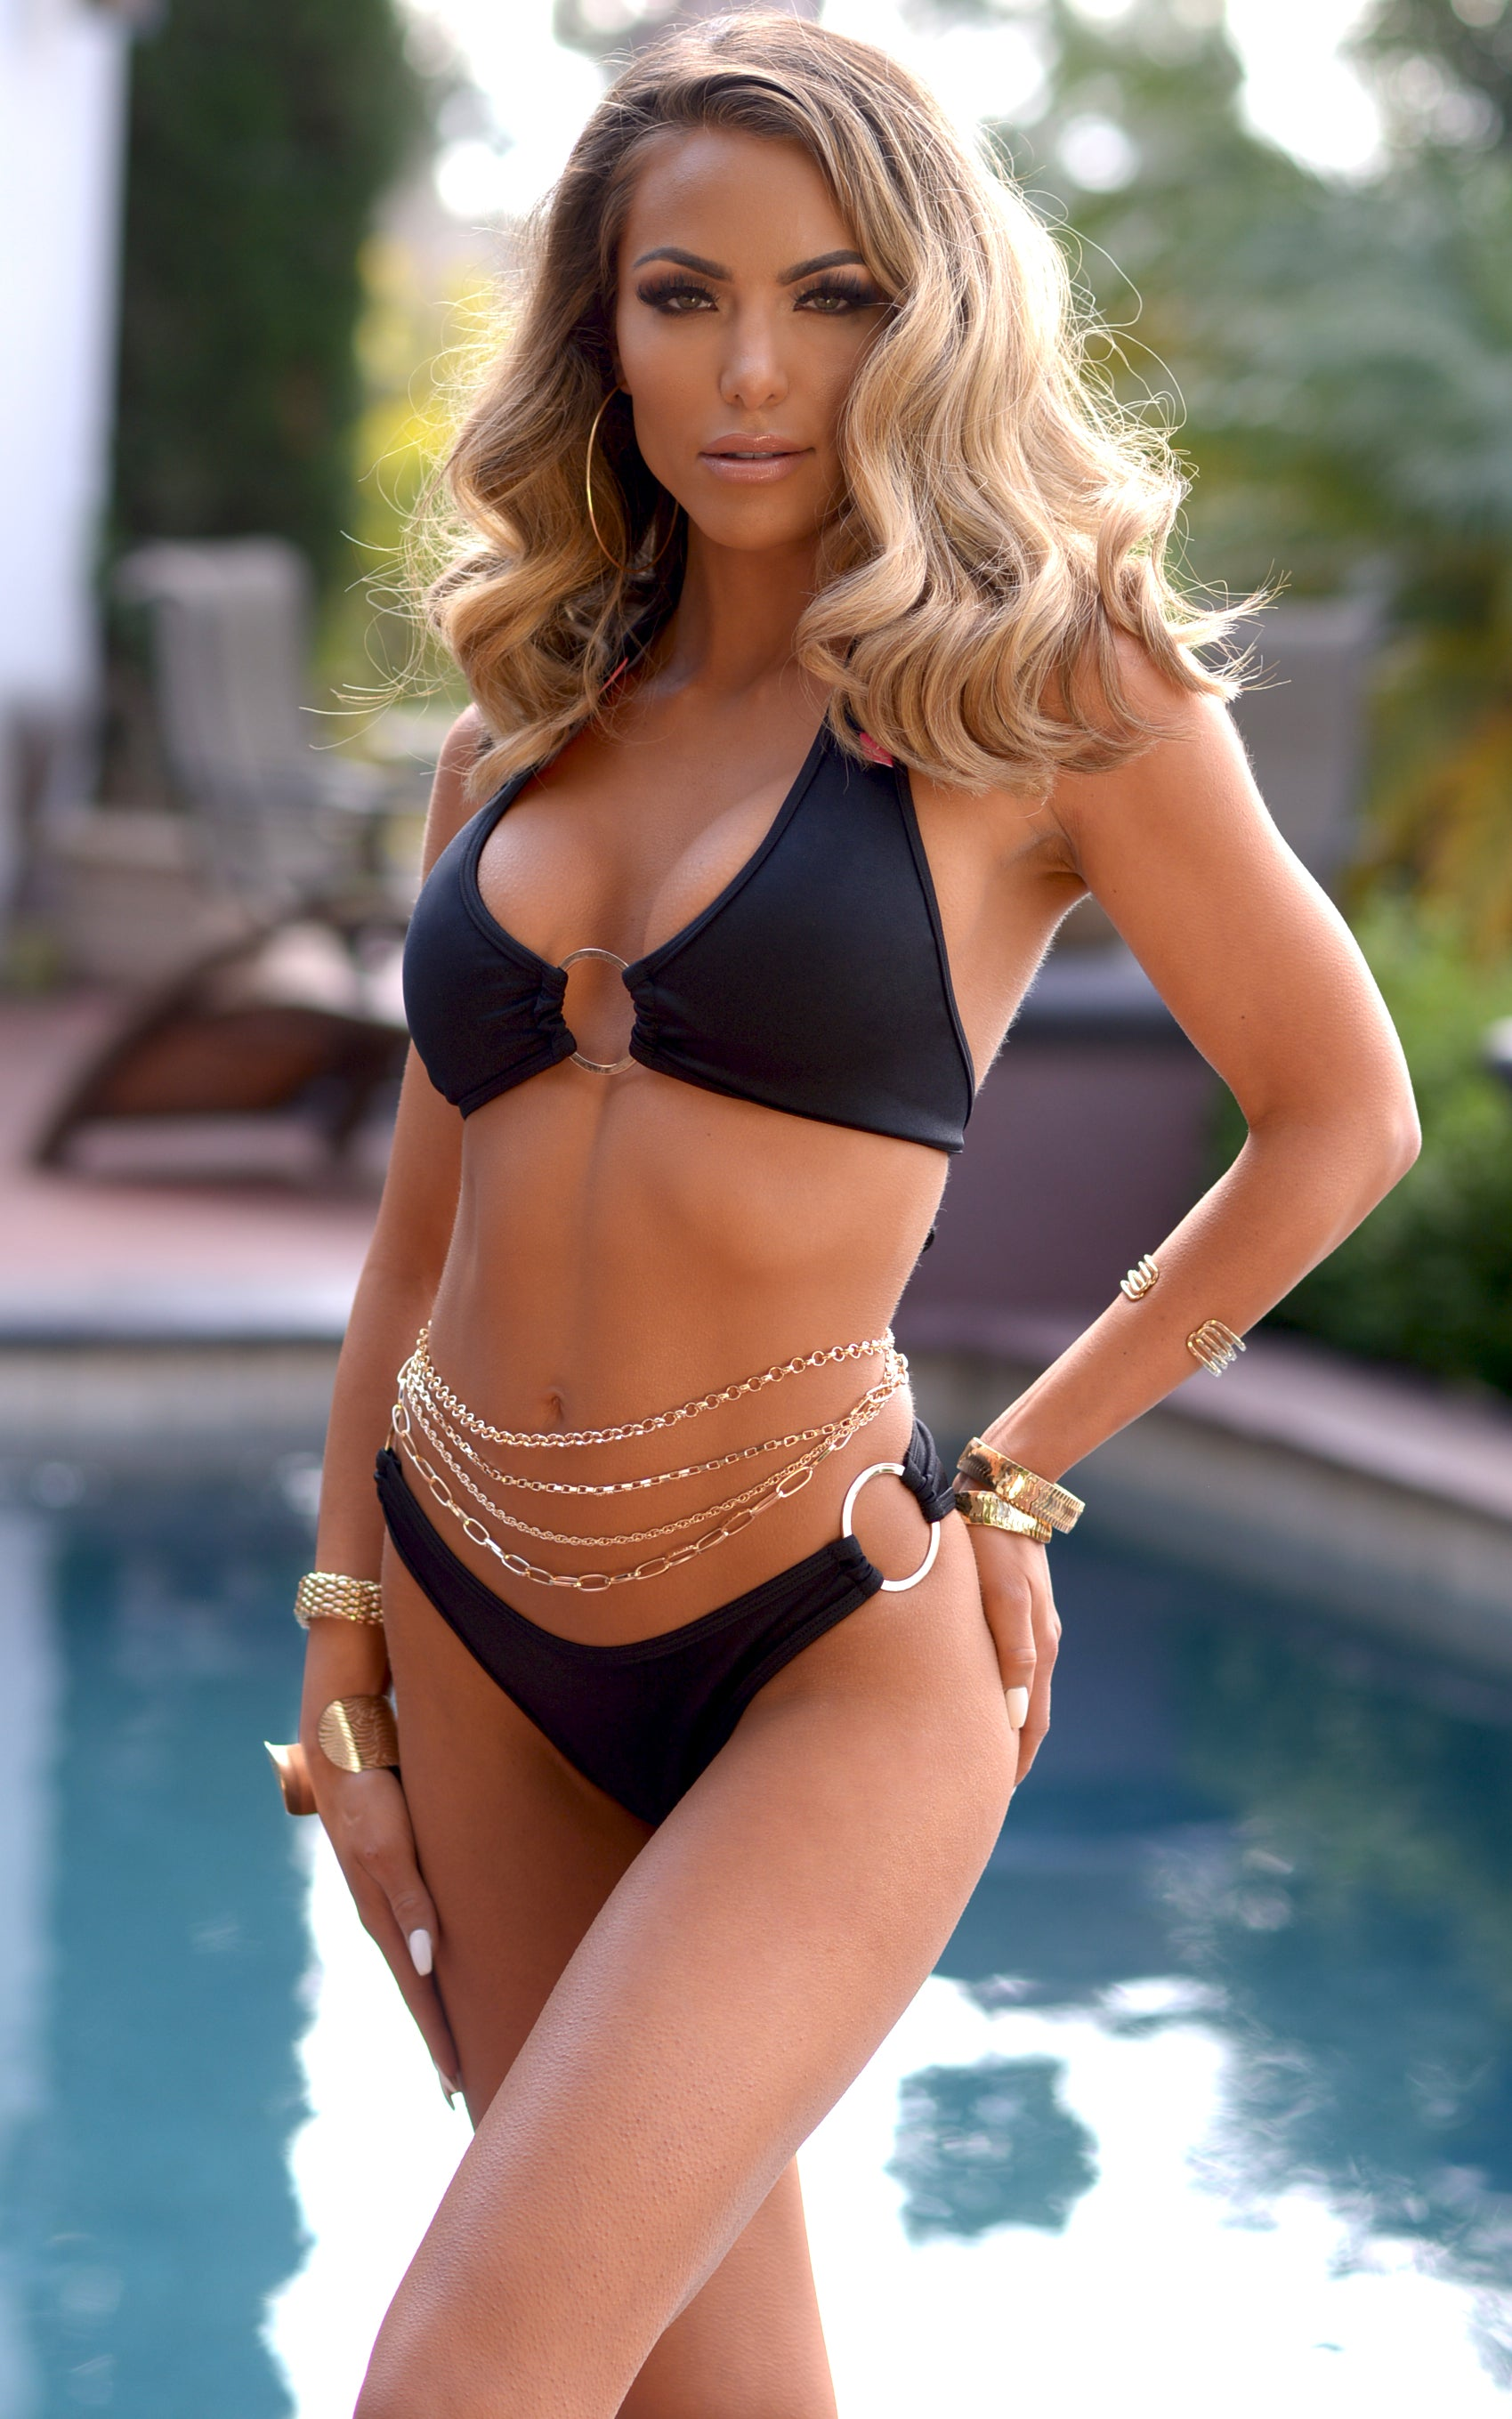 Napa: Halter Loop High Cut Bikini in Black - Chynna Dolls Swimwear